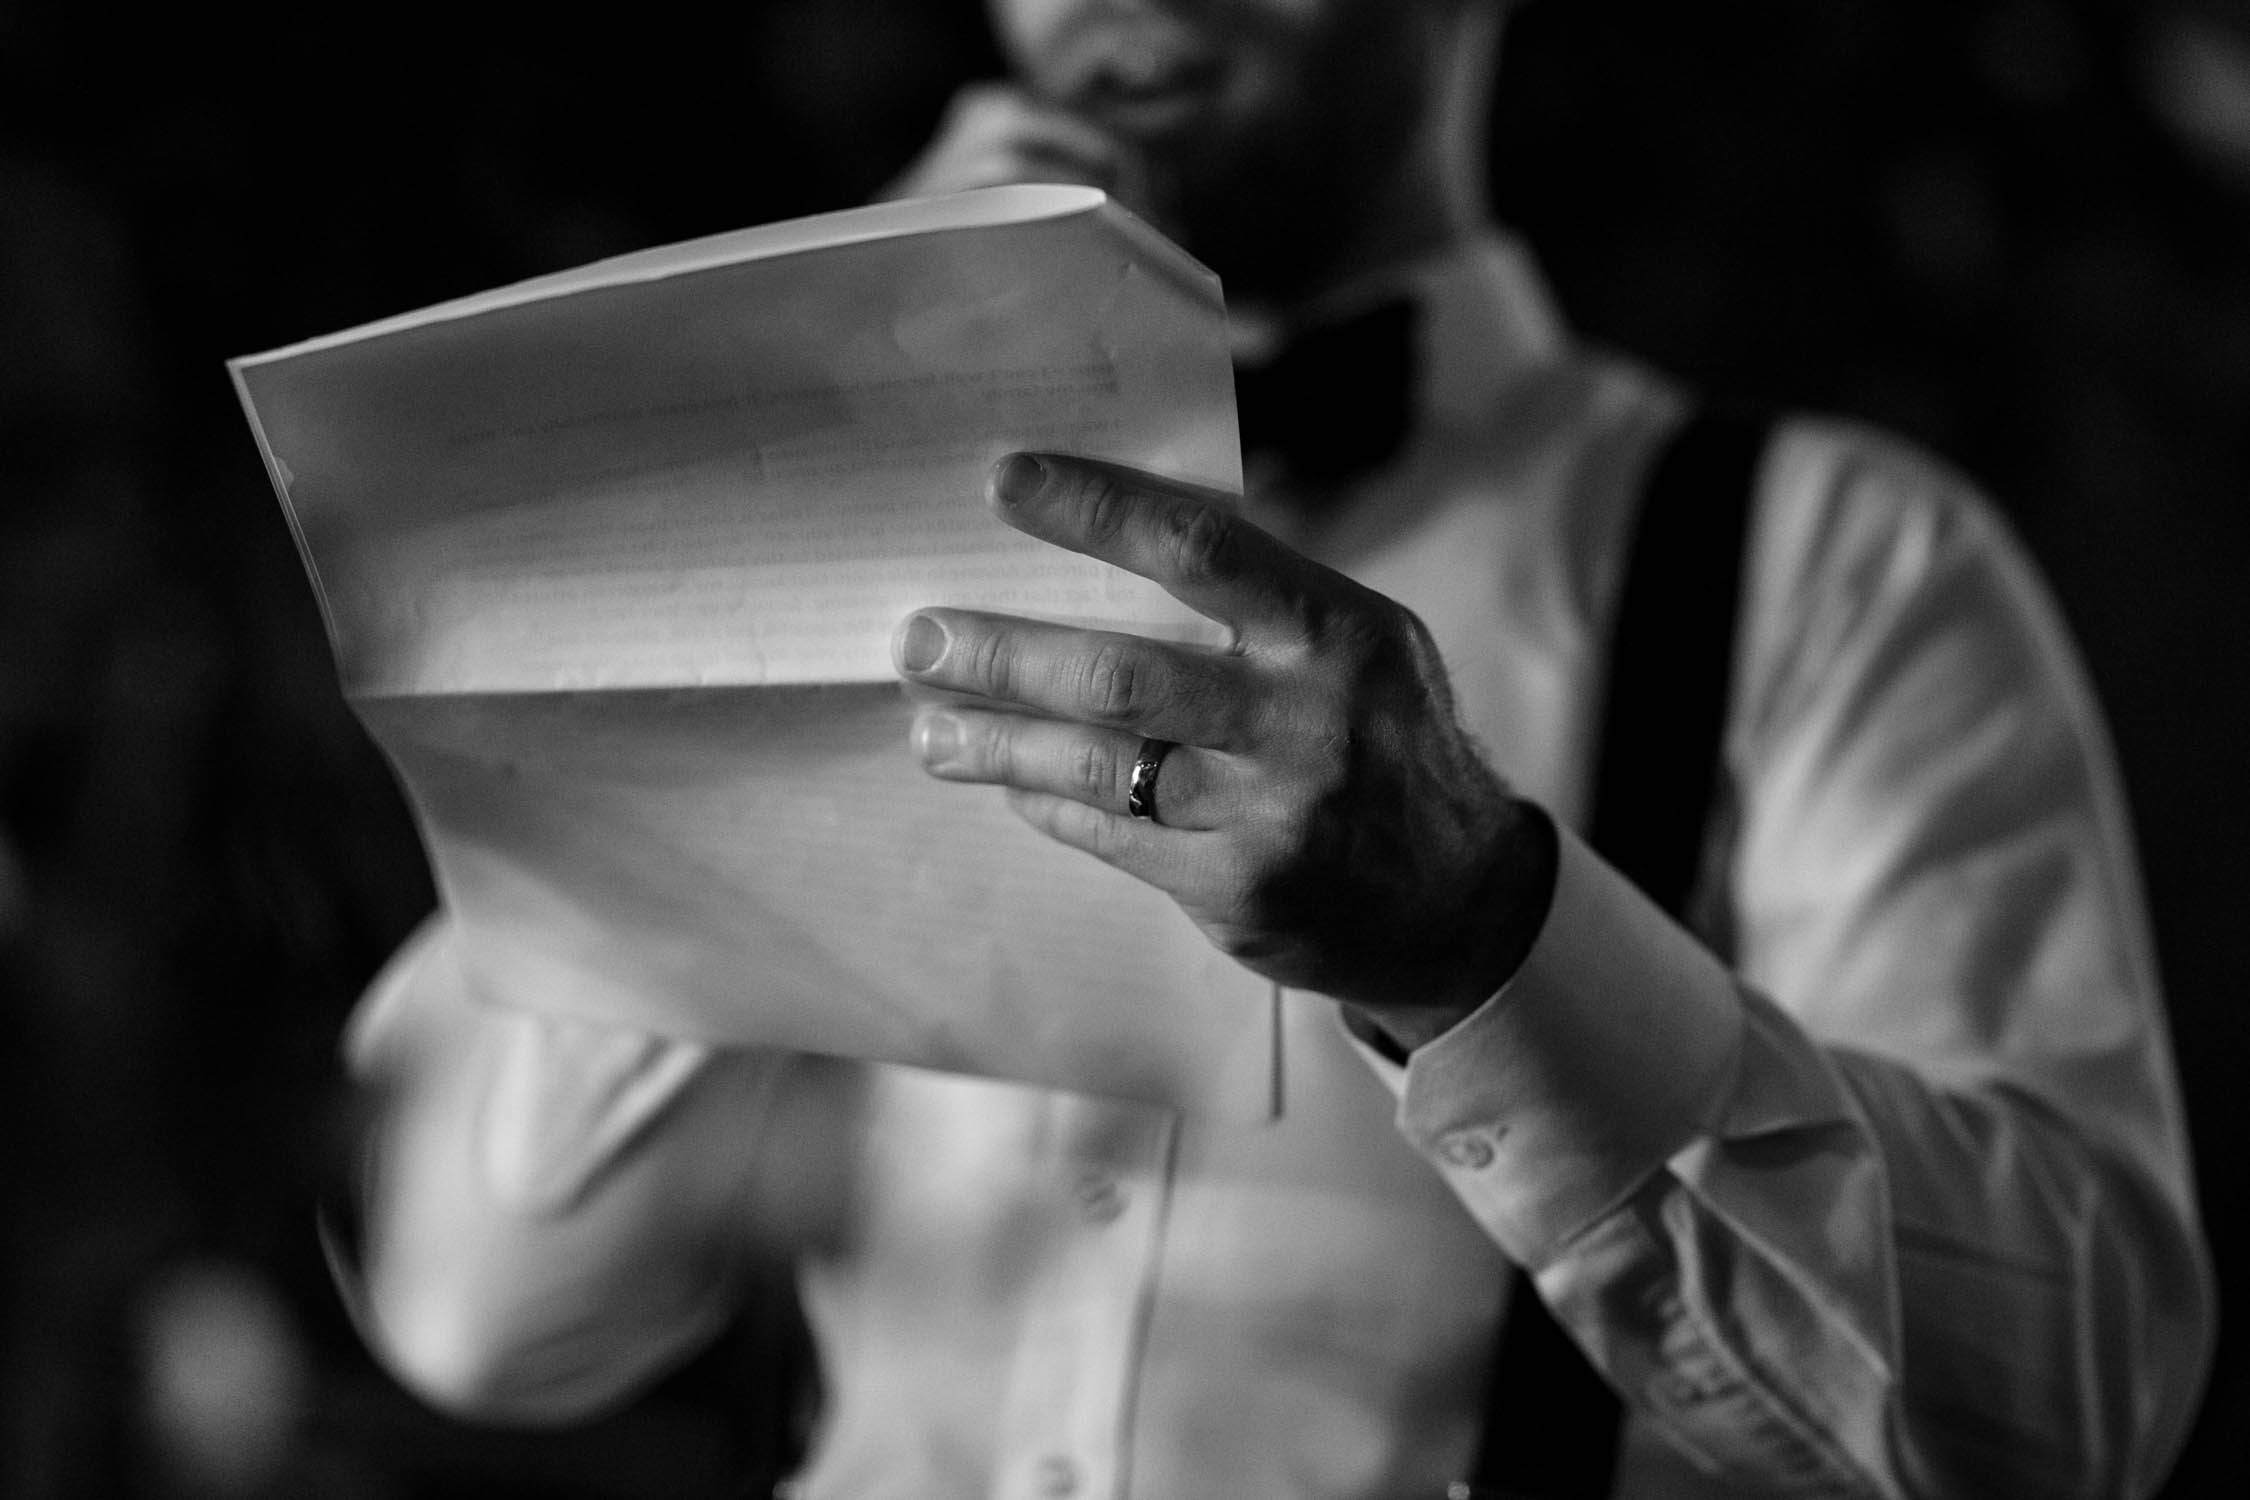 Photograph of groom with his new wedding ring on saying speech to his bride at Madsen's Greenhouse wedding venue in Newmarket close to Toronto